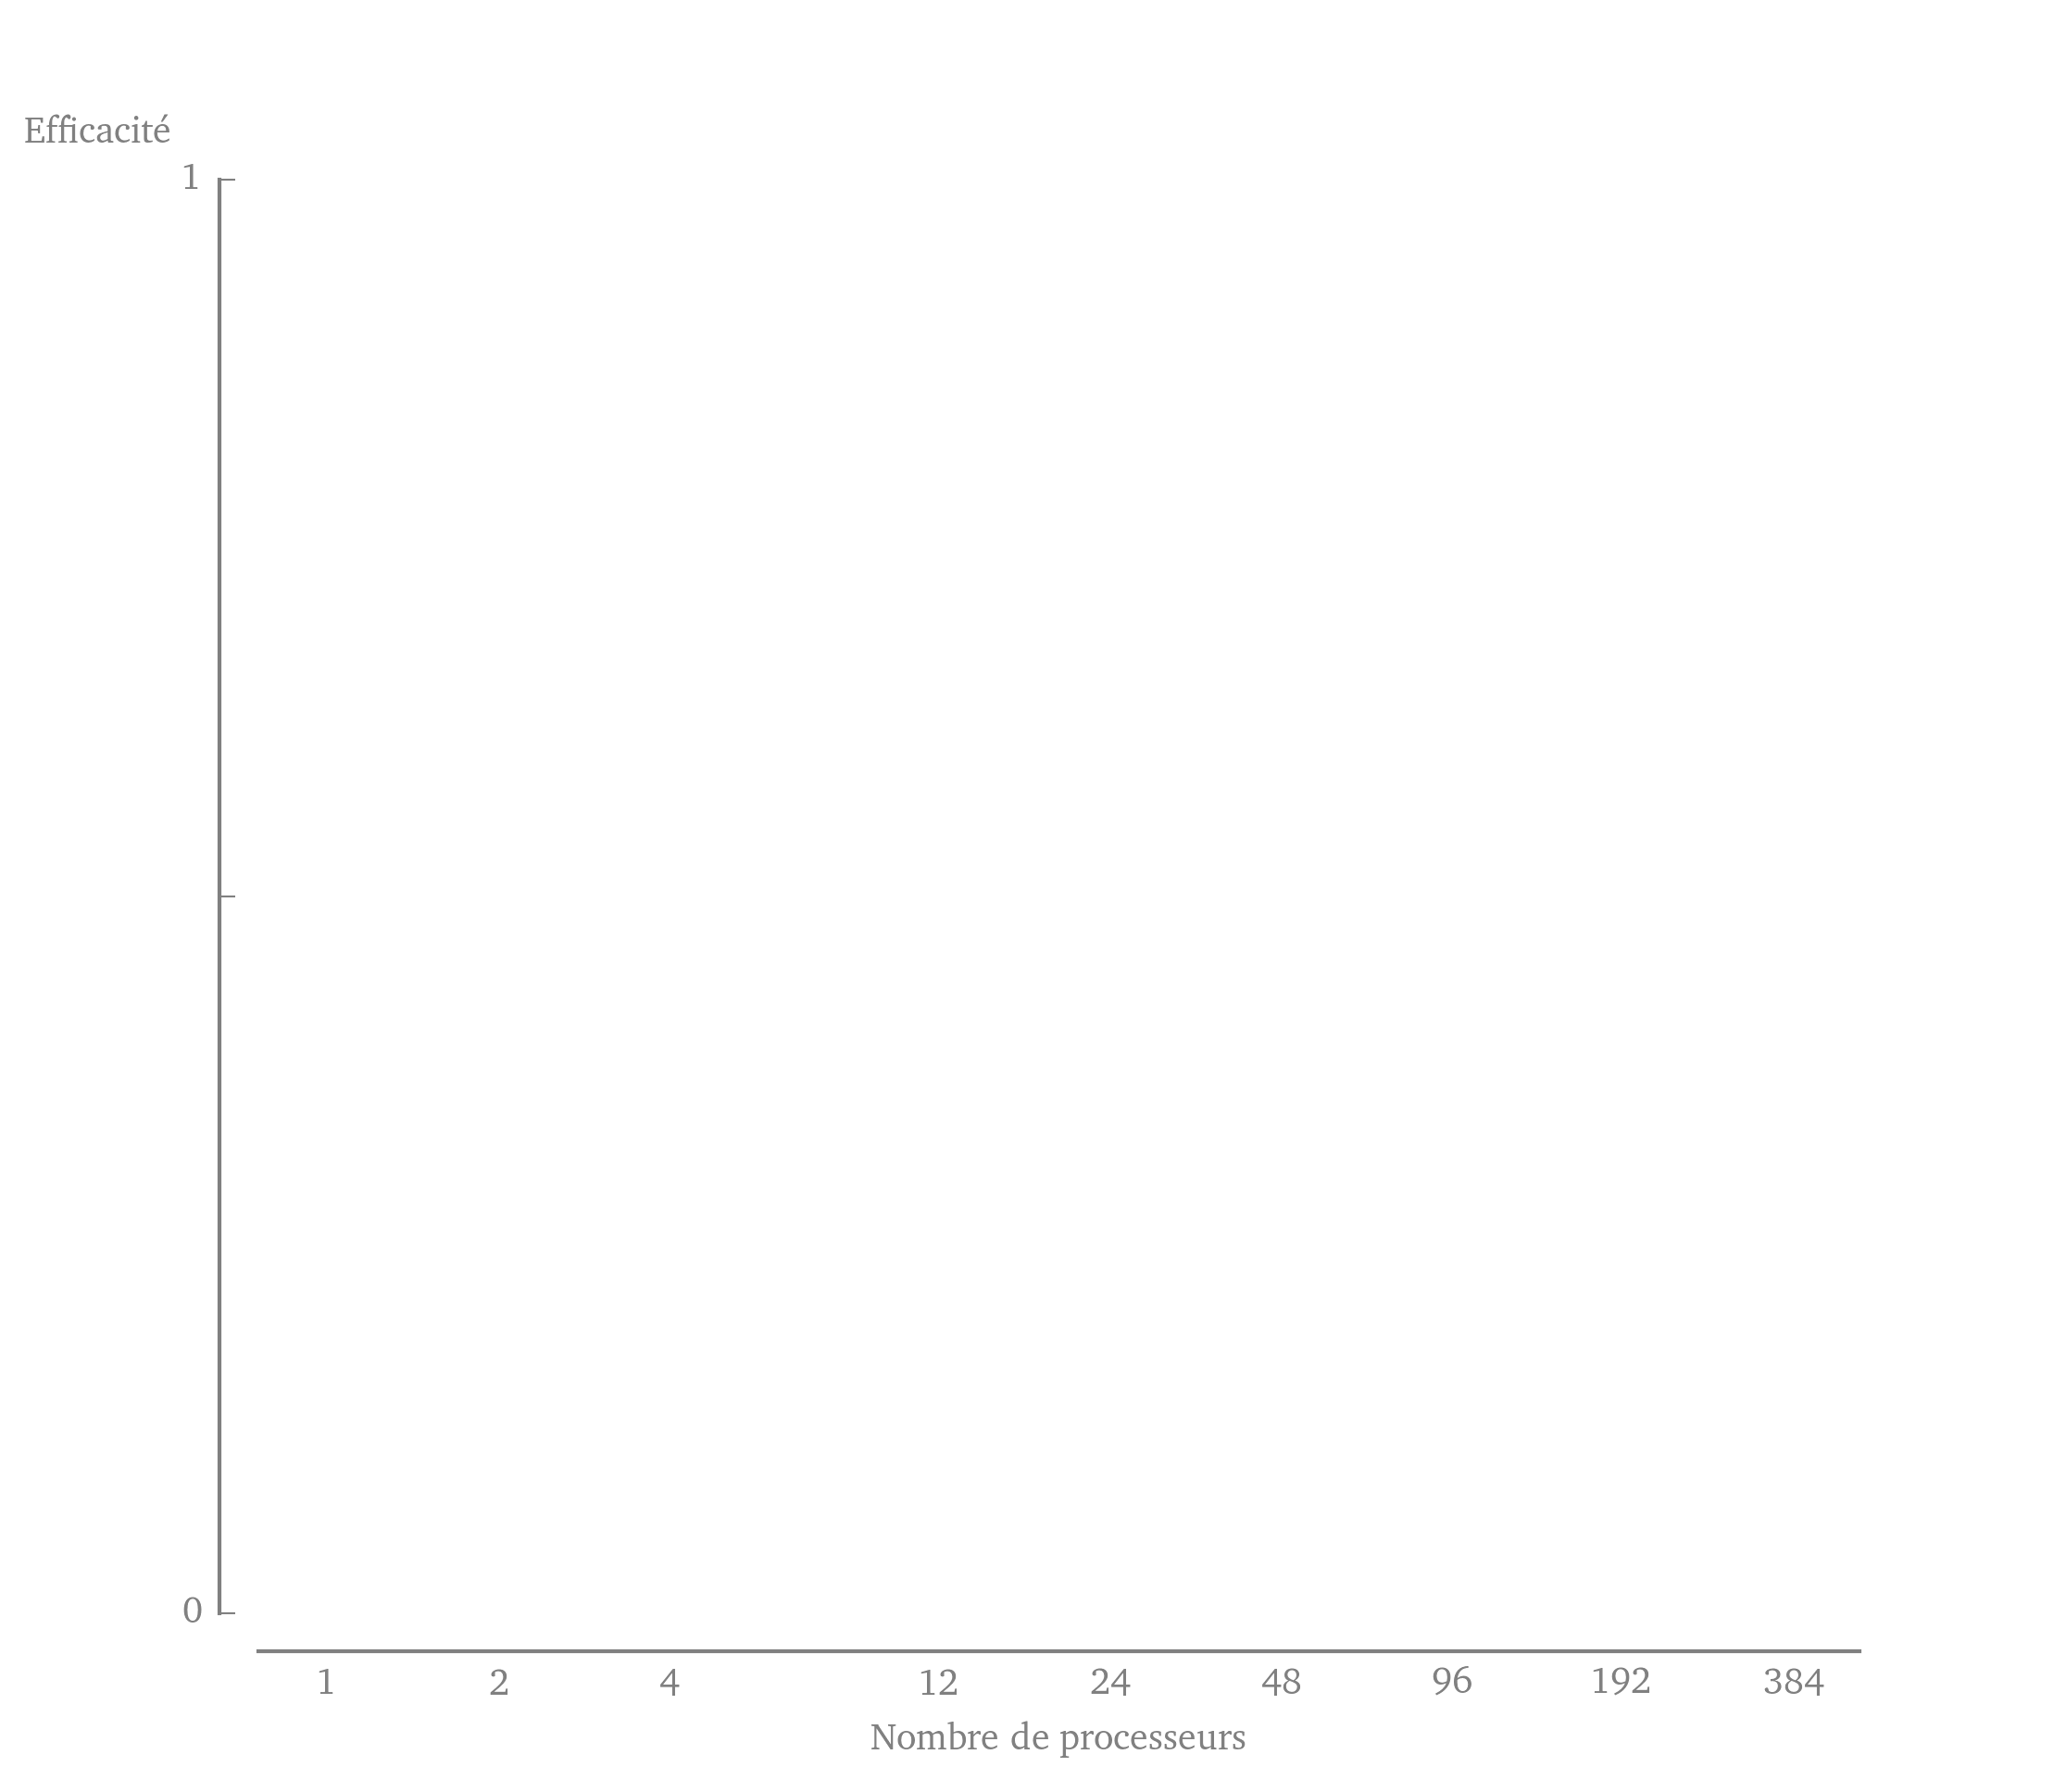 Setting The Position Of The Ylabel In A Matplotlib Graph